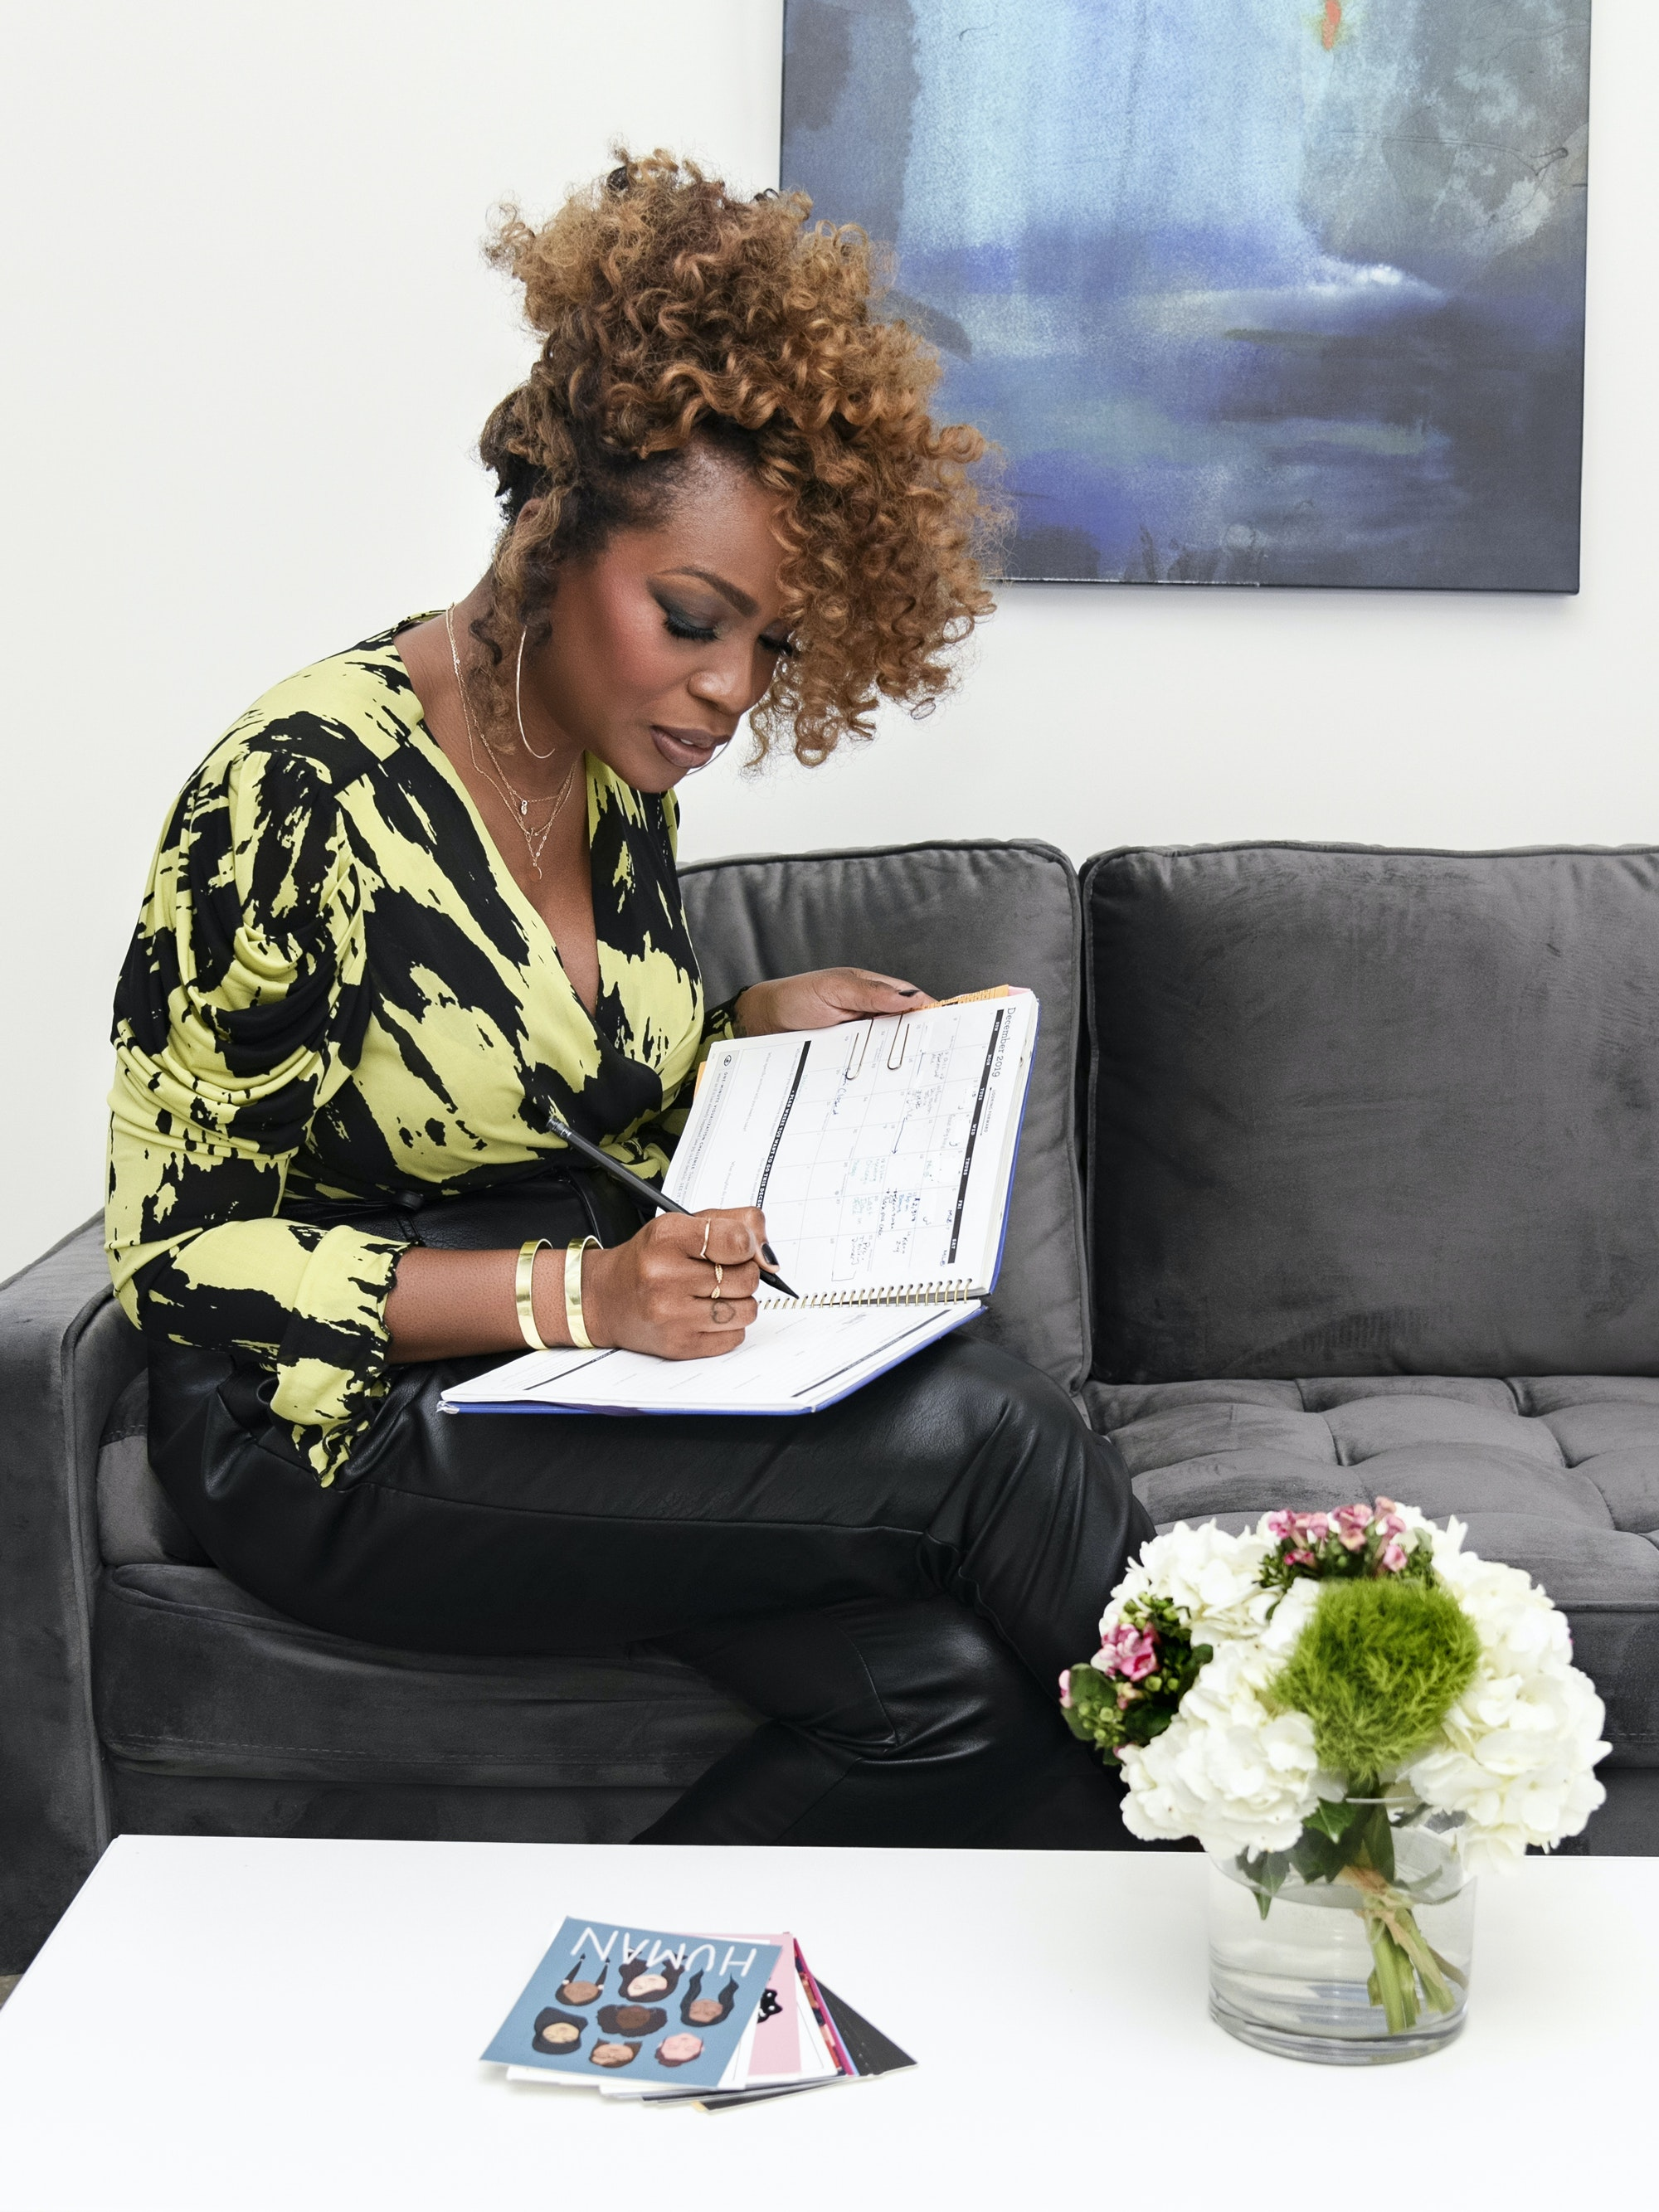 Beauty Publicist Liv Lewis writing in book green and black shirt